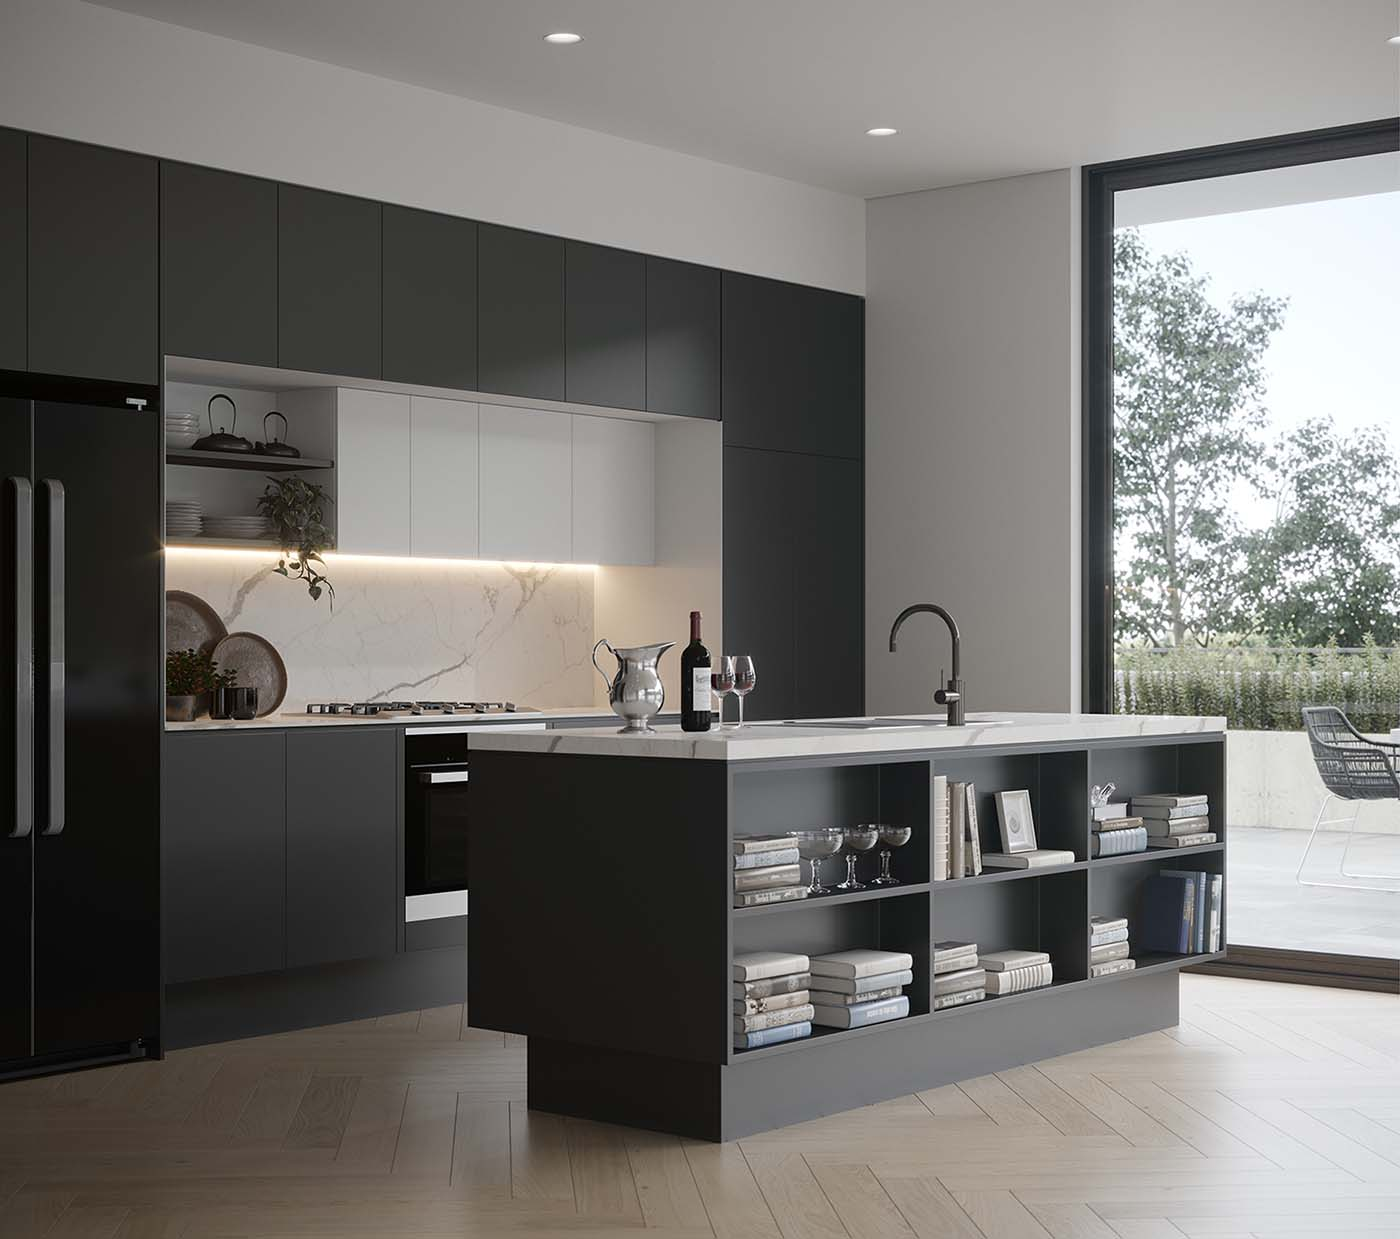 Kitchen with black finishes and black benchtop that incorporates storage